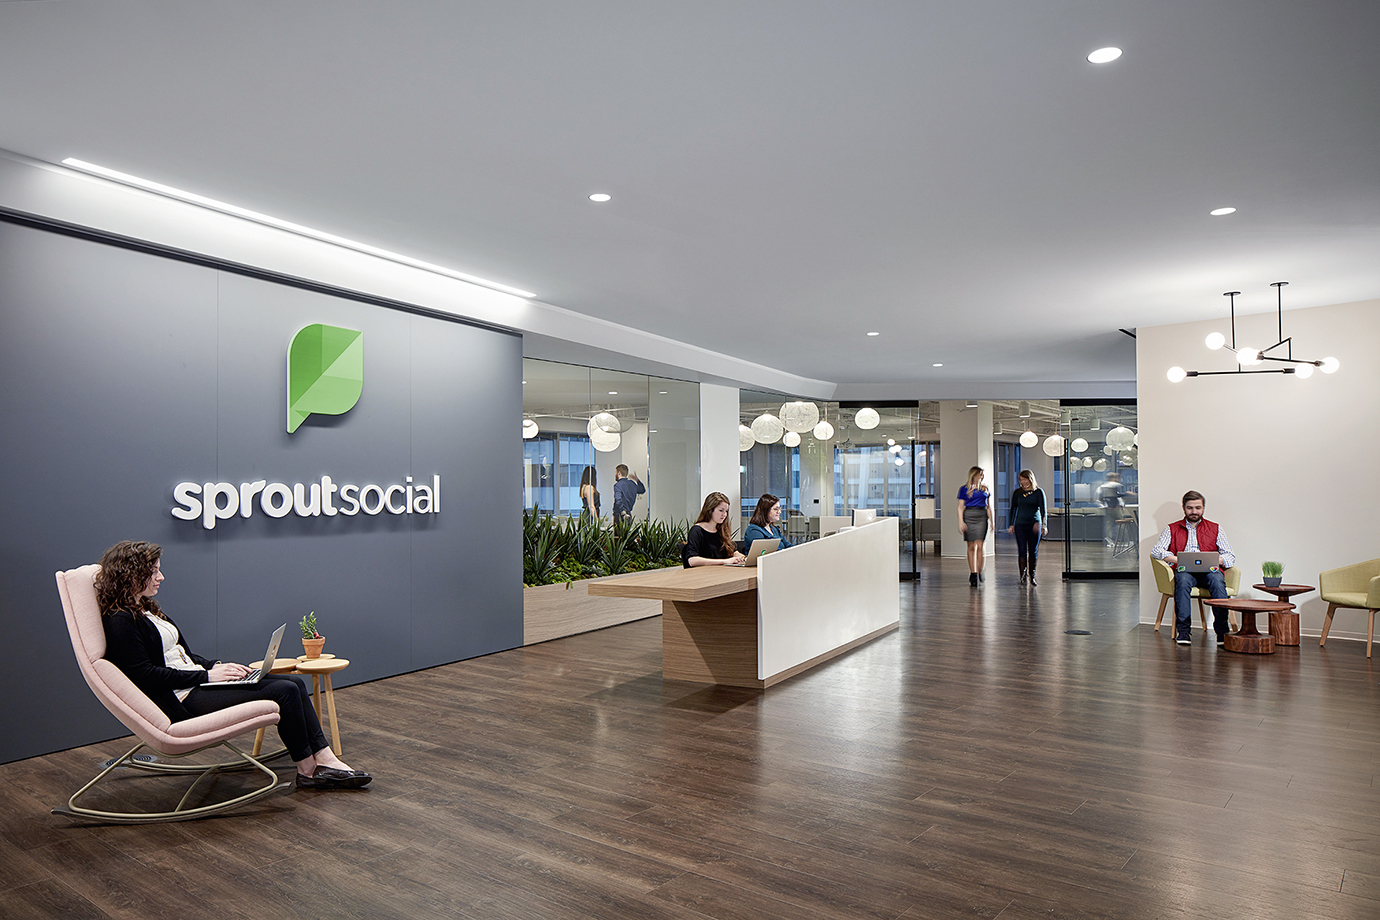 The reception area of the Sprout Social office.